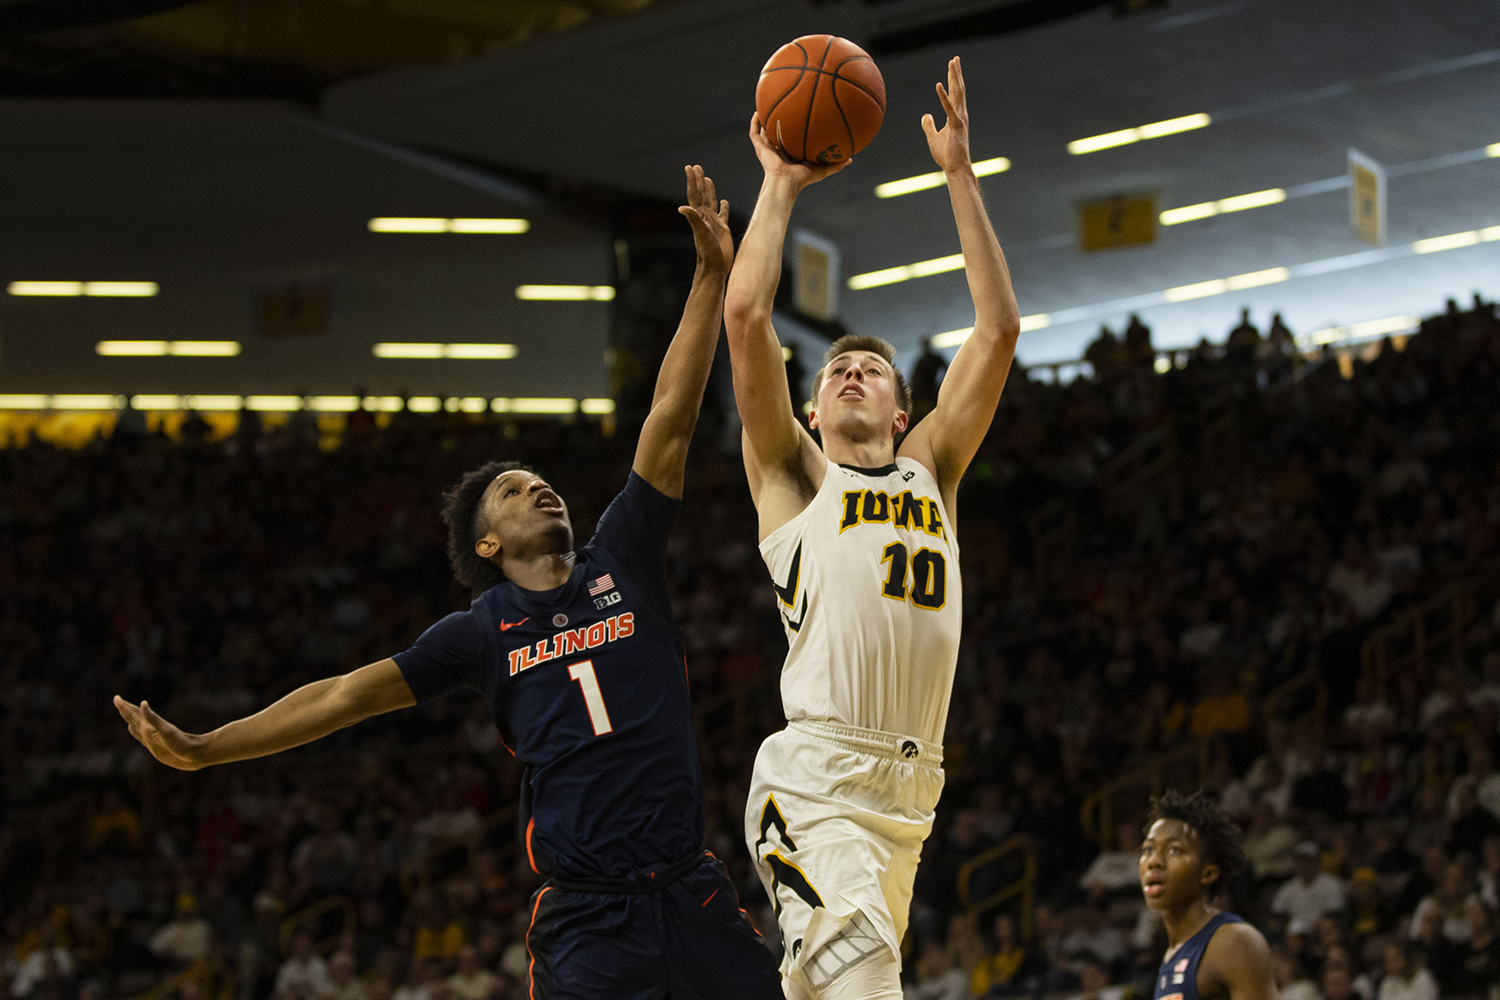 Iowa+guard+Joe+Wieskamp+attempts+a+shot+during+the+Iowa%2FIllinois+men%27s+basketball+game+at+Carver-Hawkeye+Arena+on+Sunday%2C+January+20%2C+2019.+The+Hawkeyes+defeated+the+Fighting+Illini%2C+95-71.+